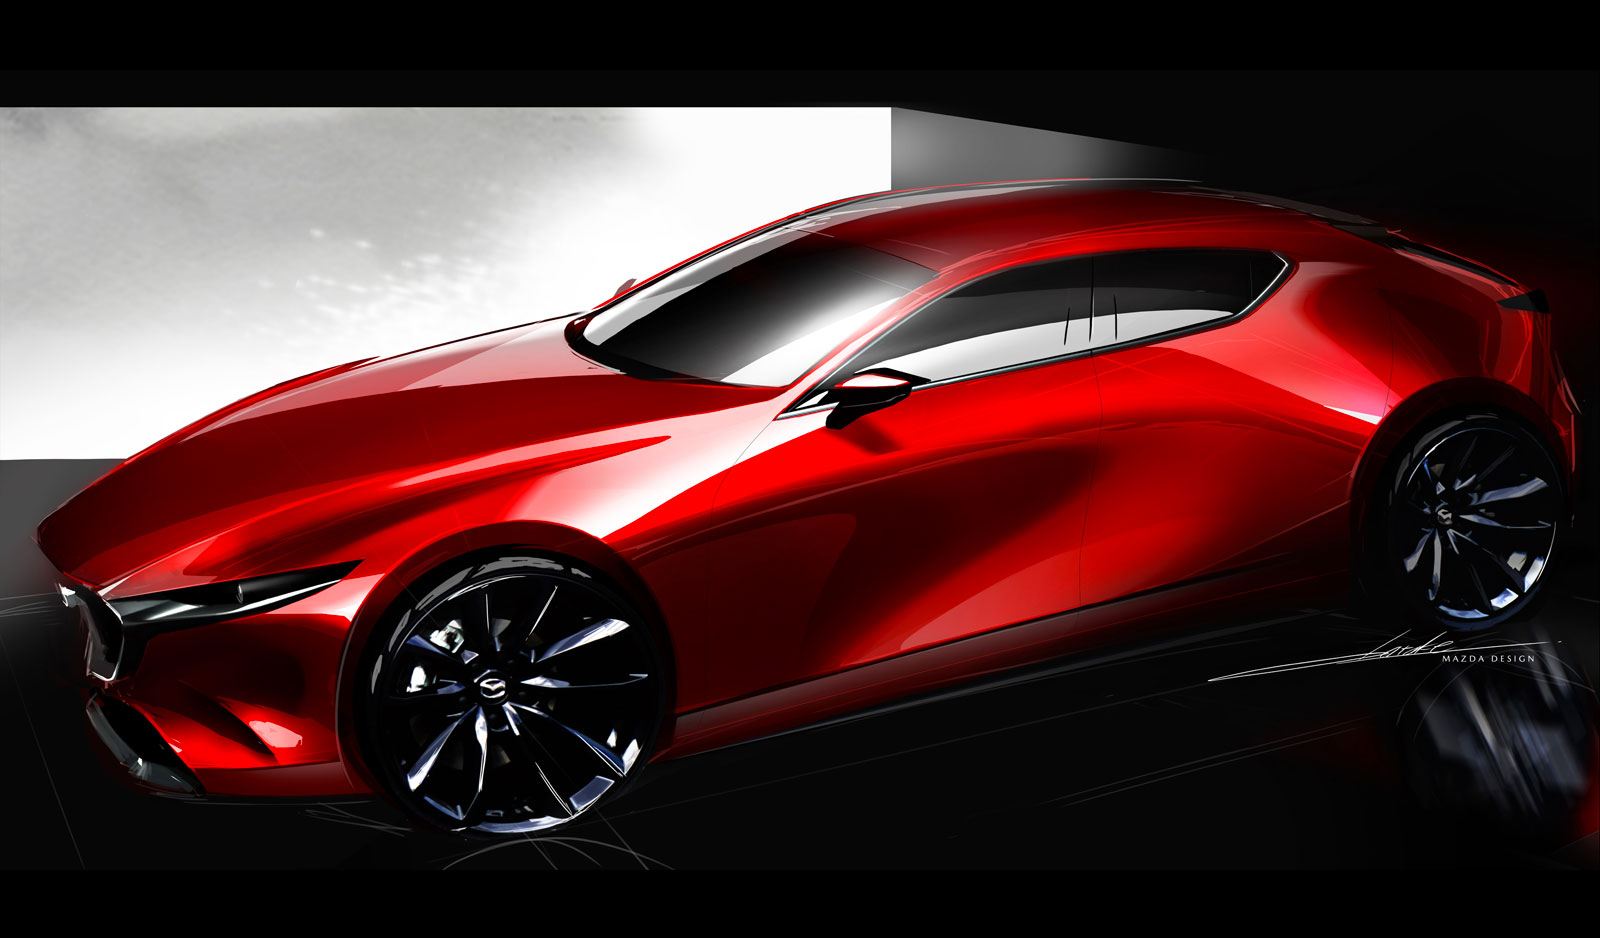 Mazda3 Hatchback Design Sketch Render Car Body Design